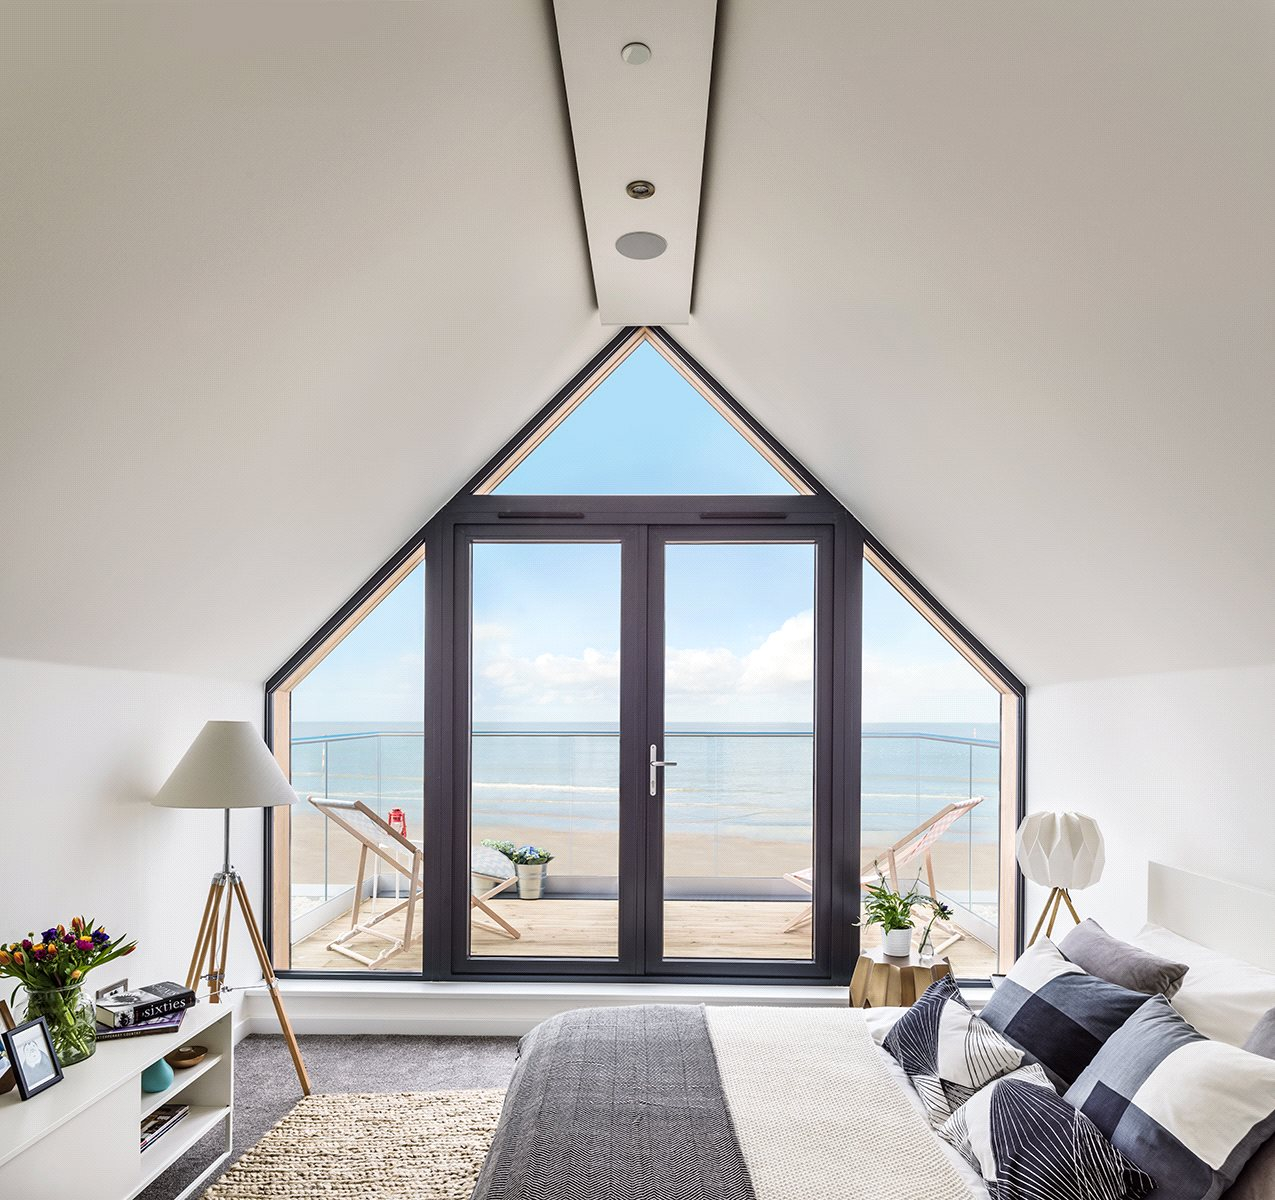 Margate Beach Houses By Guy Holloway Architects Go On Sale